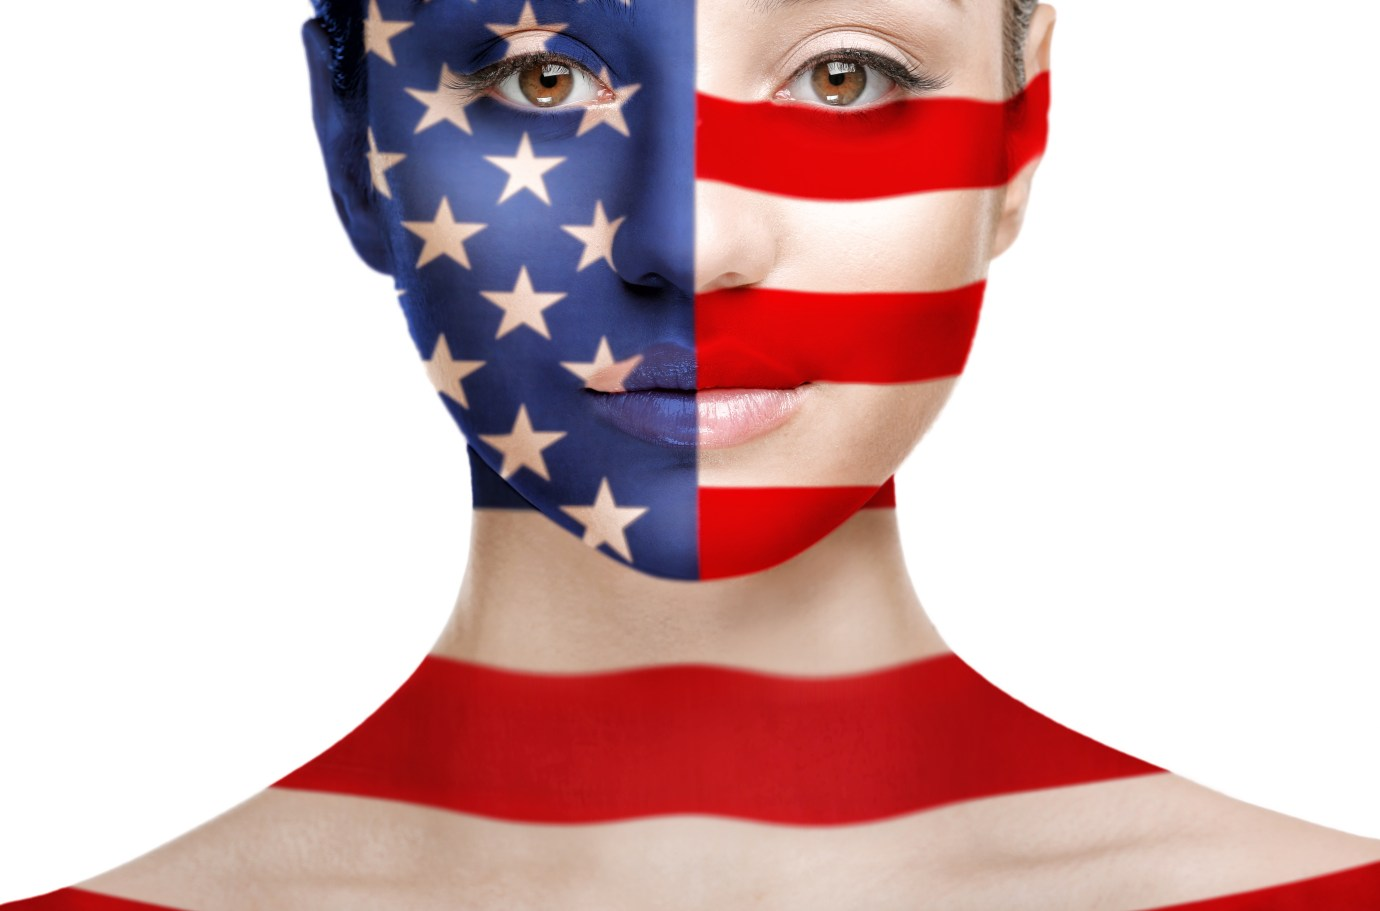 Patriotic concept. Young woman with painted face as American flag on white background